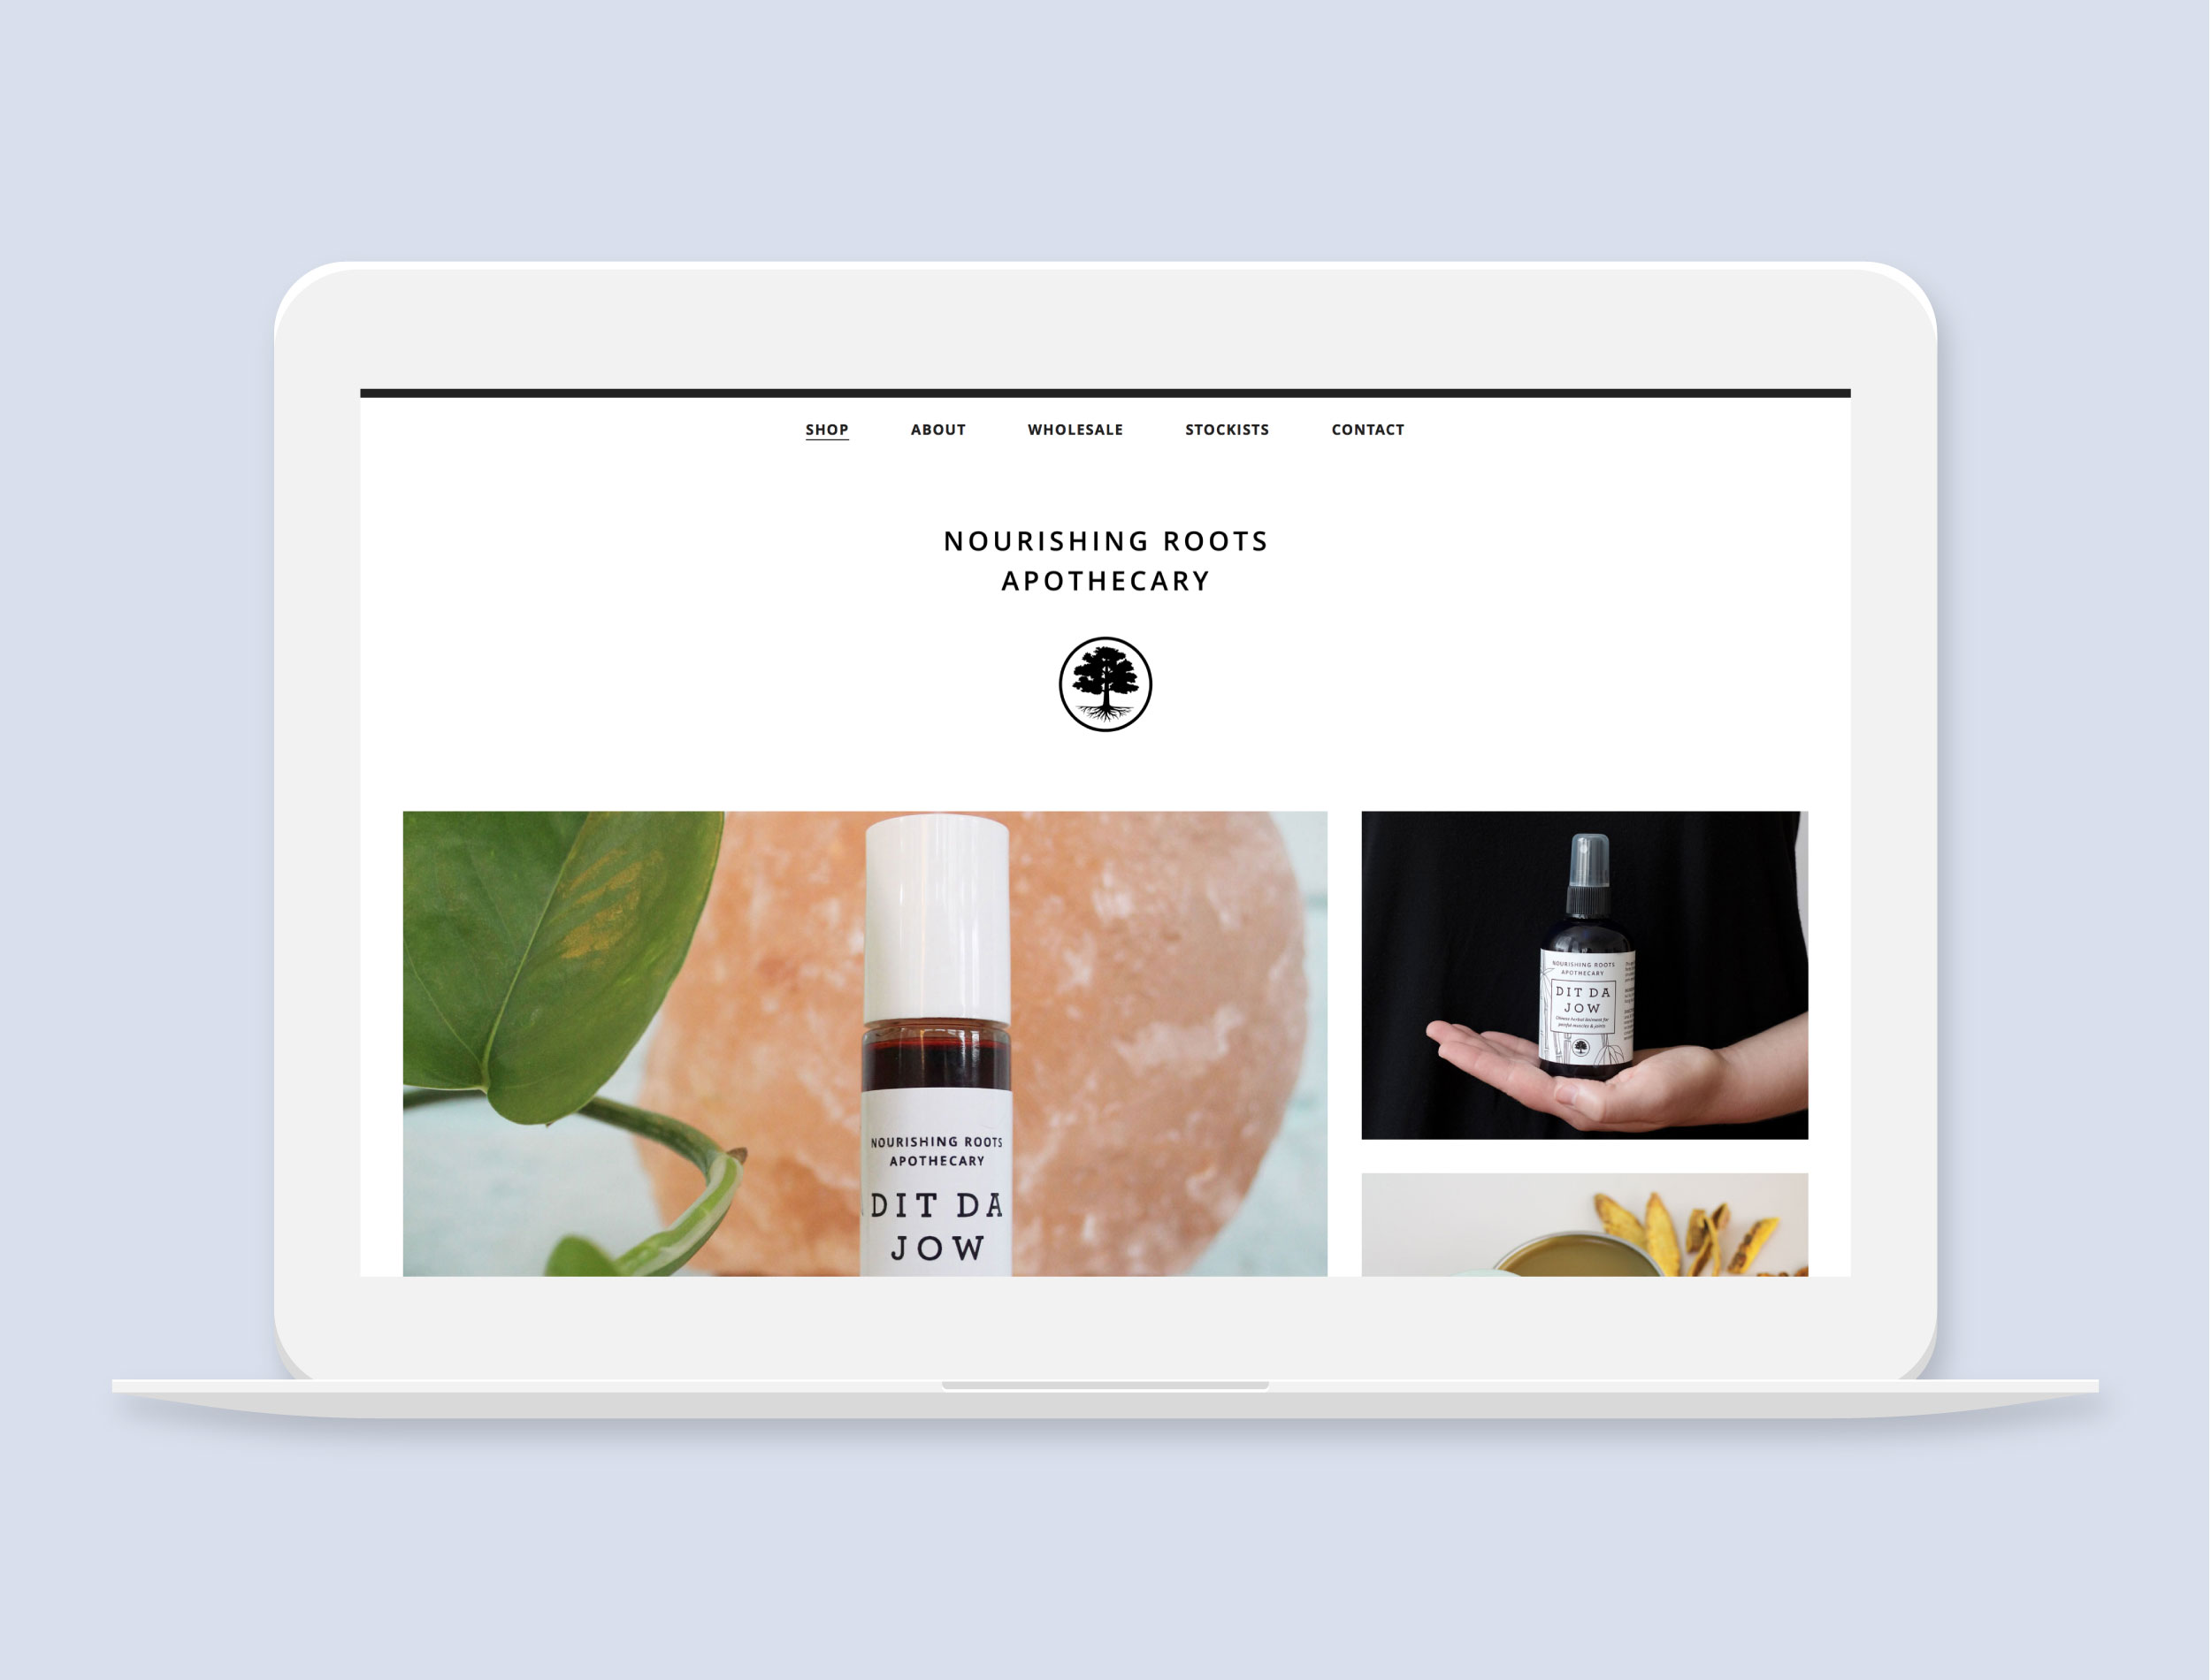 Nourishing Roots Apothecary    Herbal Products in Asheville, NC  Project Details  Visit Website